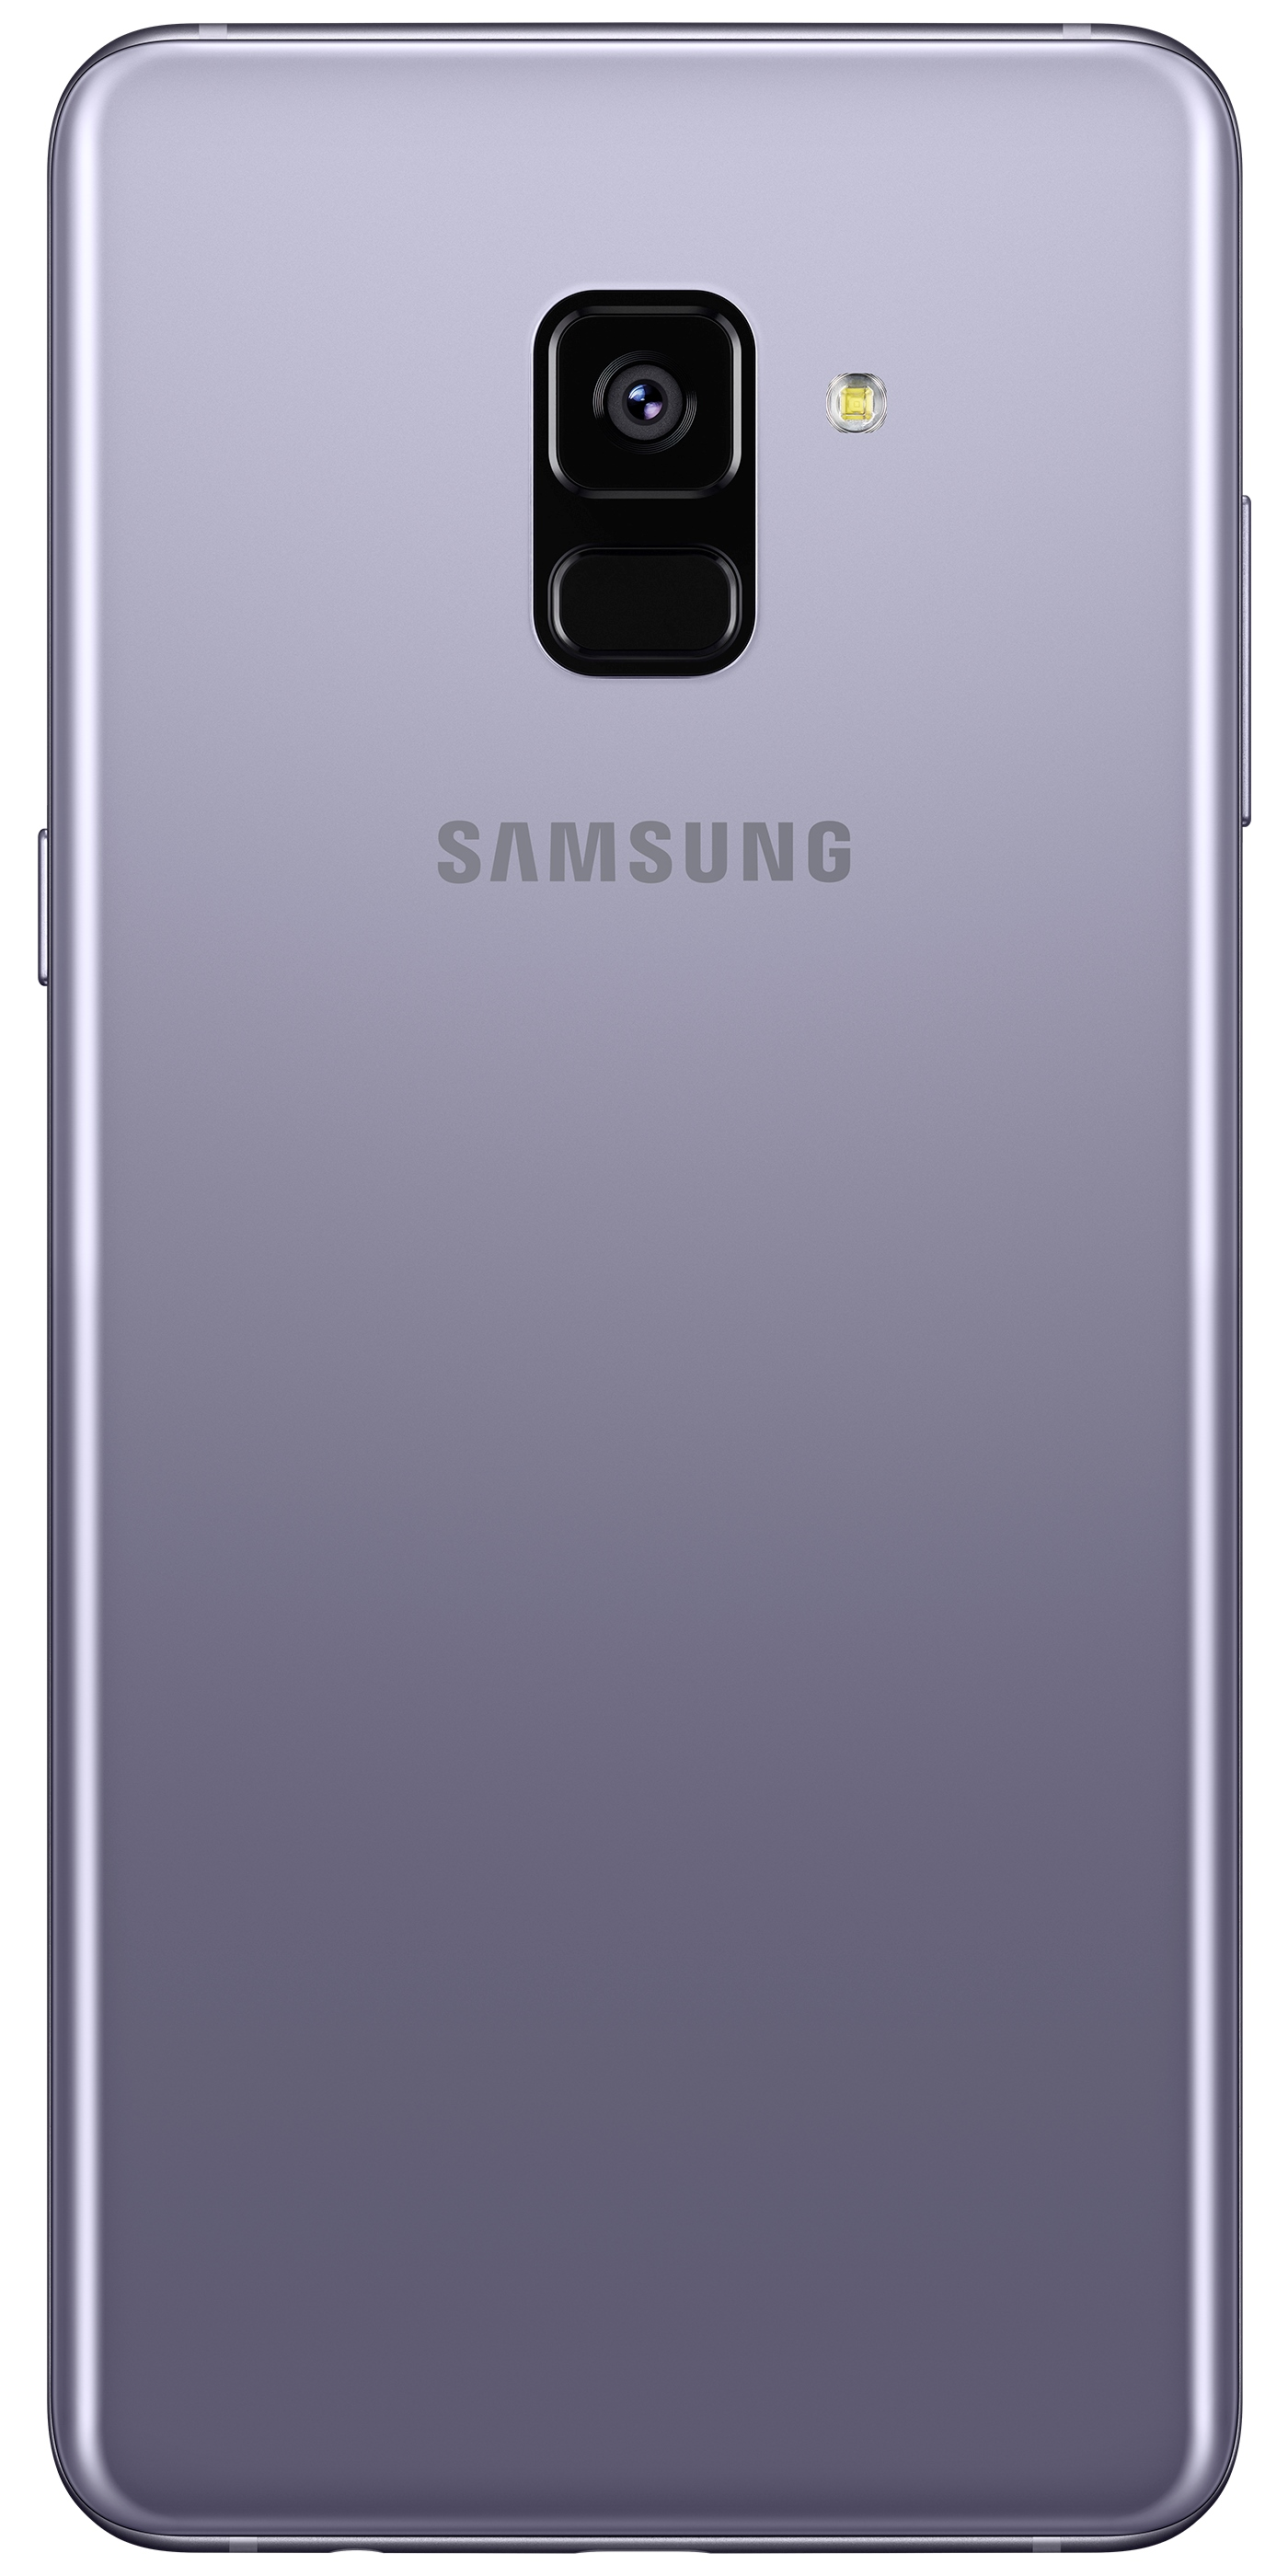 Телефоны samsung.анонсы телефоны samsung galaxy grand neo duos